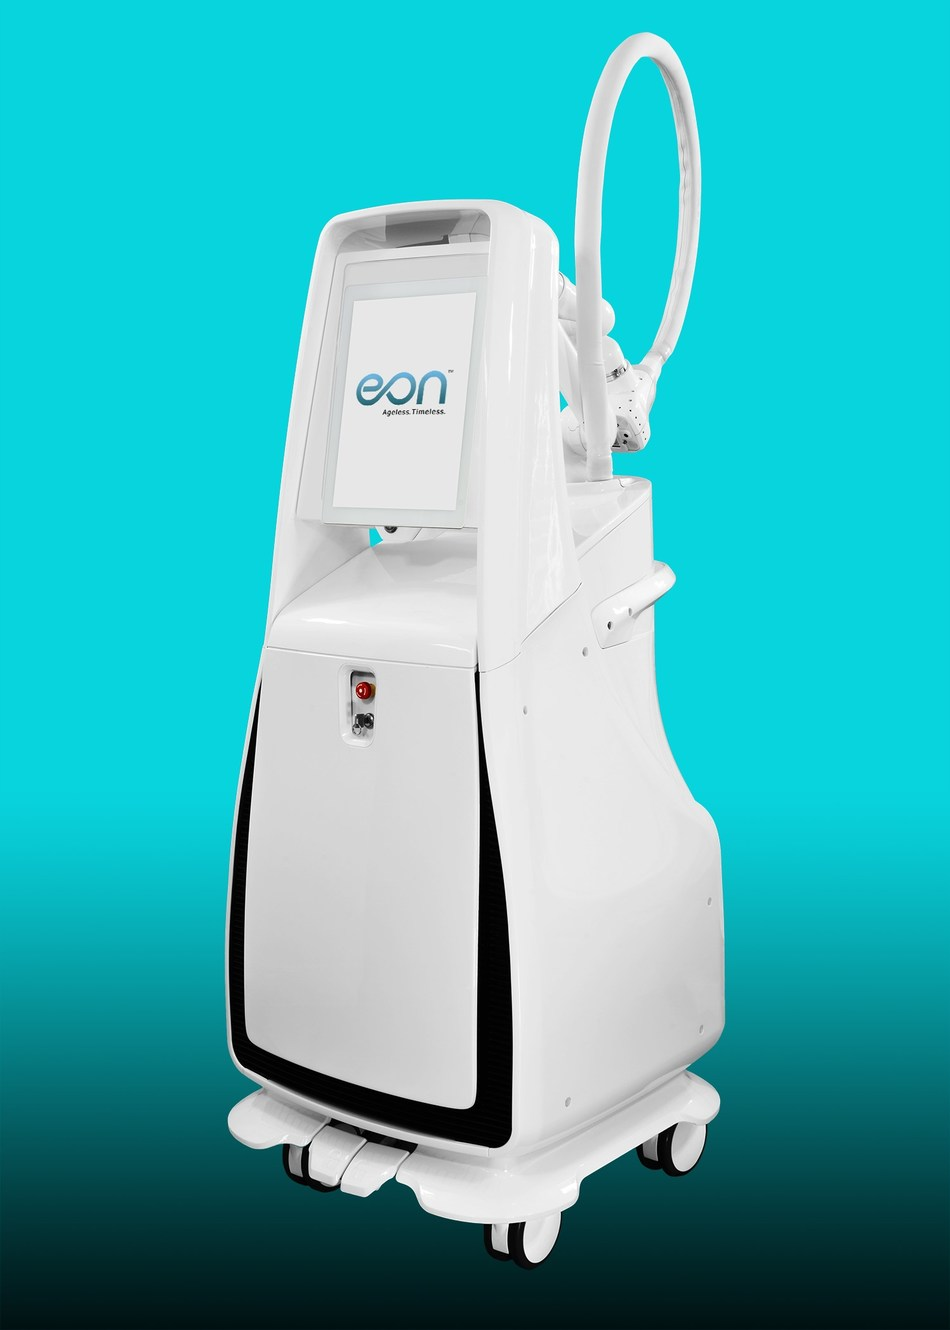 eon FR by Dominion Aesthetic Technologies